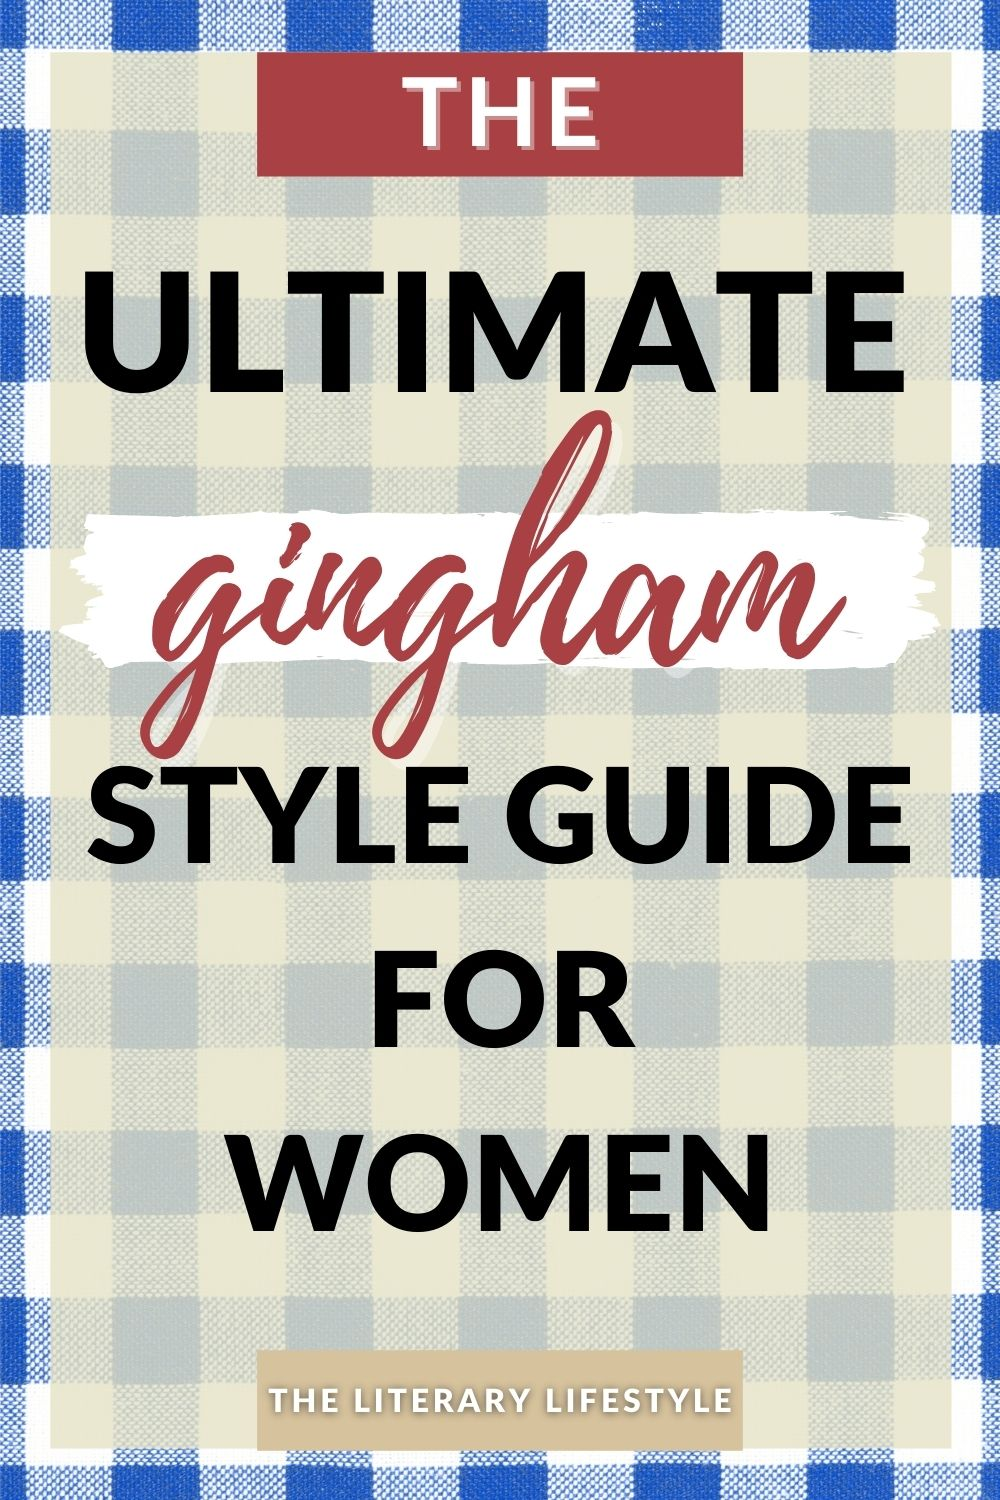 The Ultimate Gingham Style Guide for Women